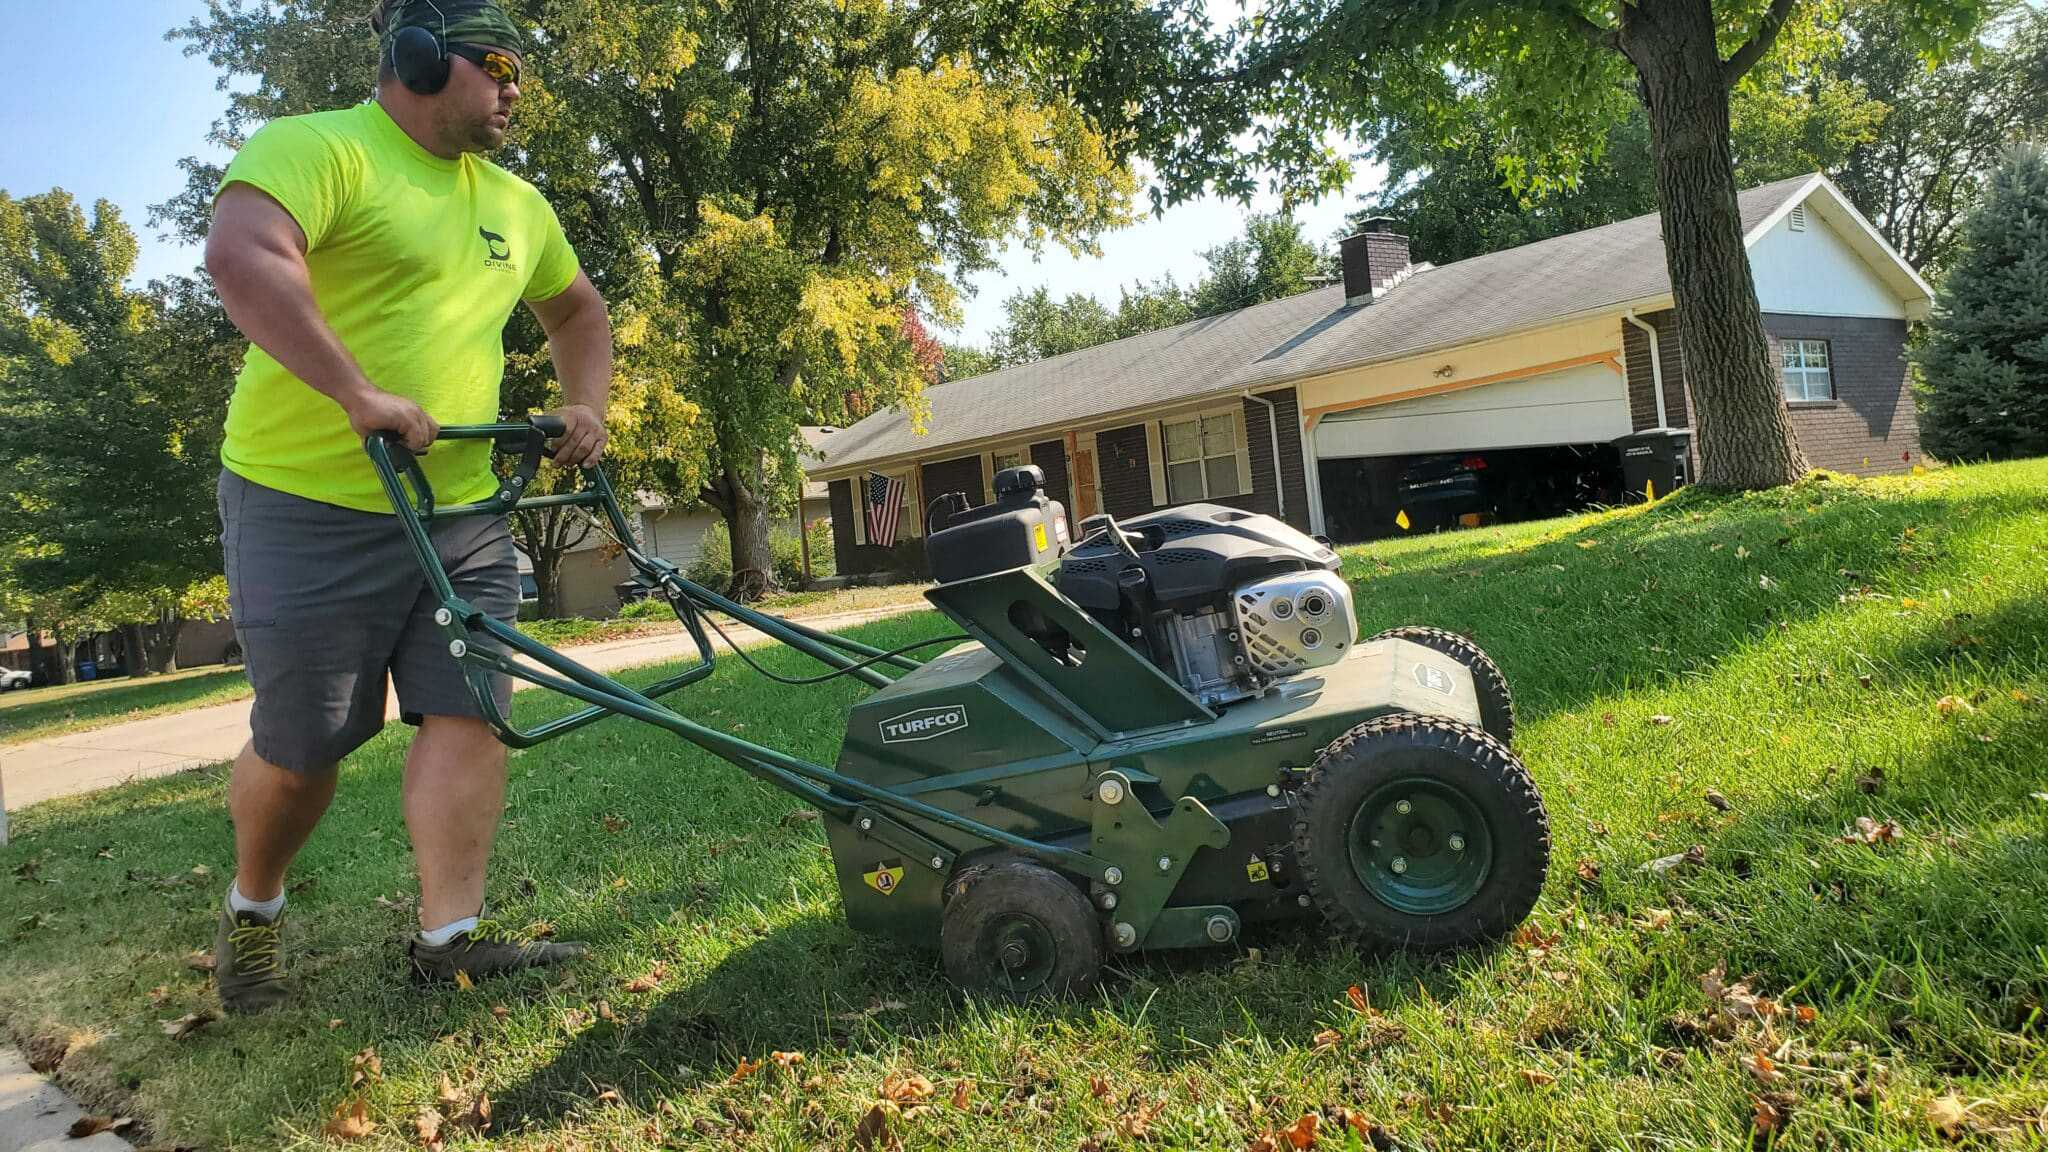 aerating your lawn regularly